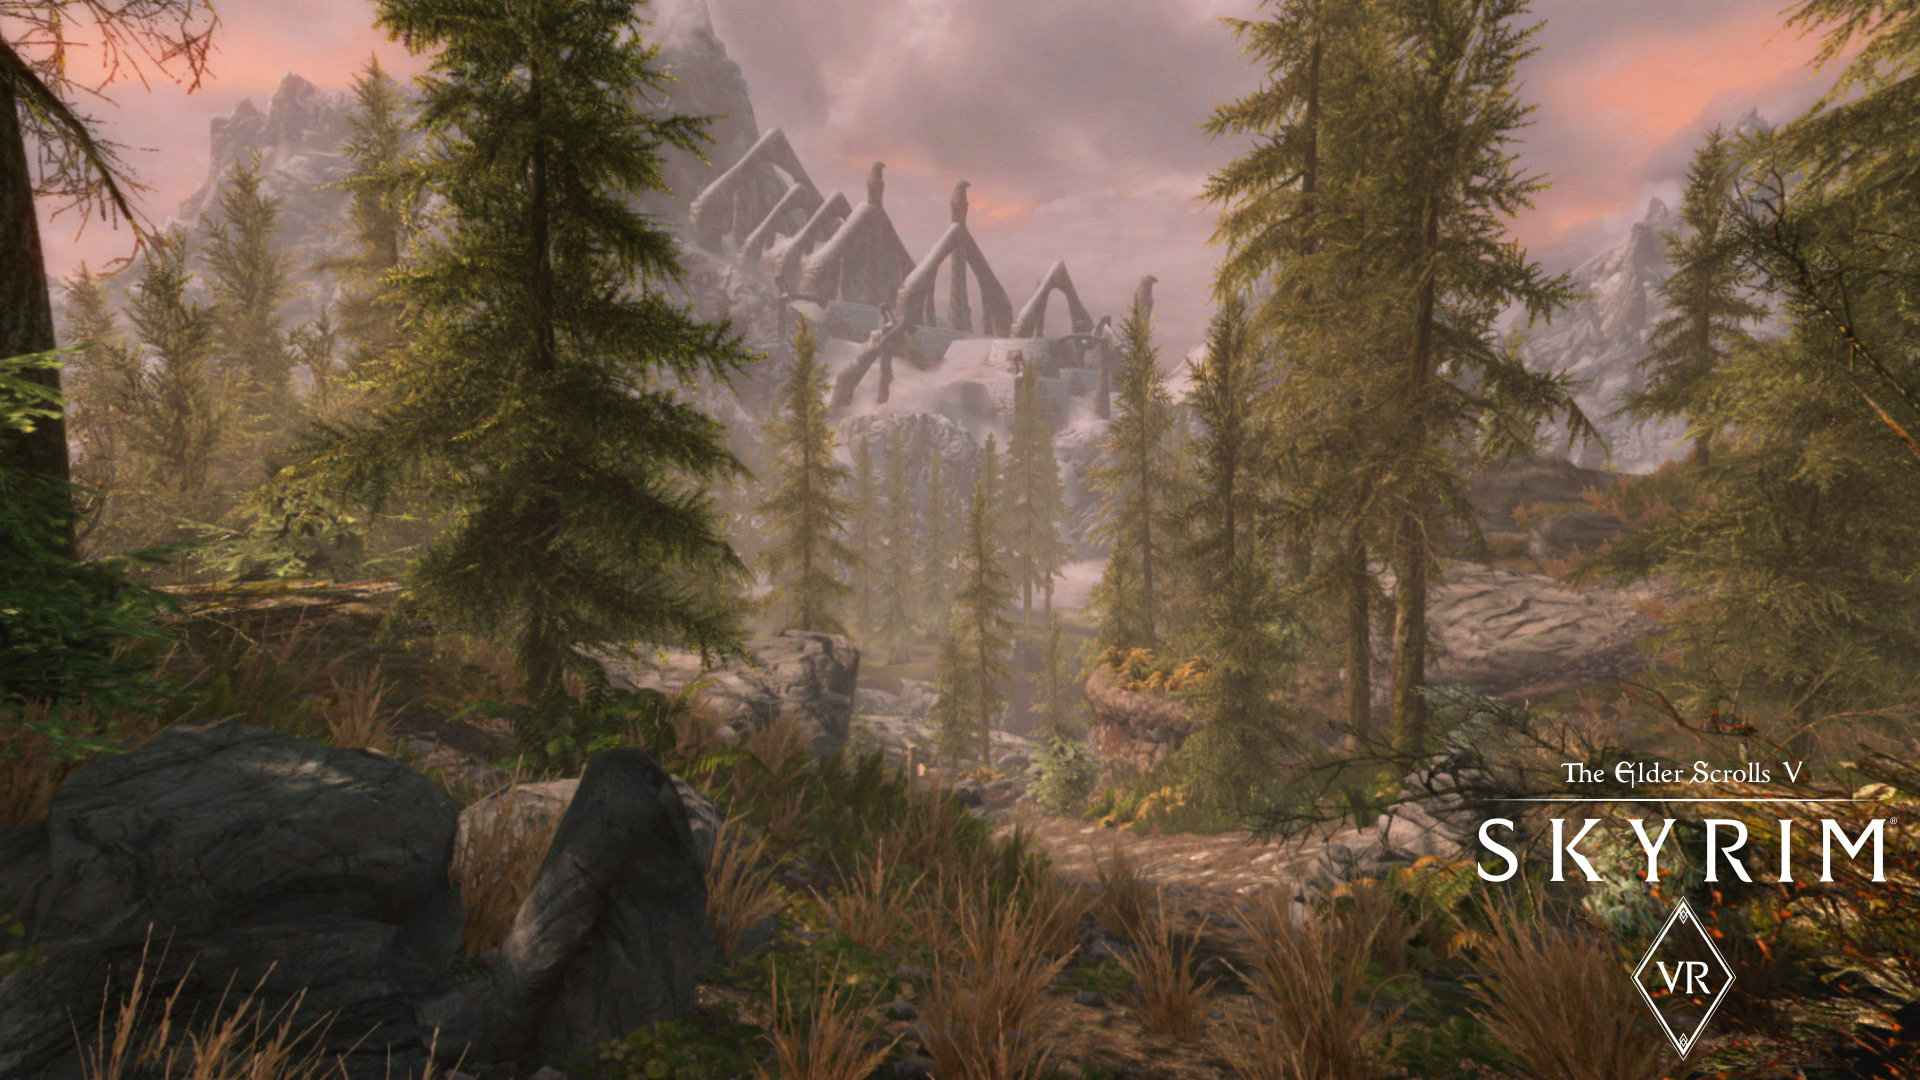 Skyrim VR Update 1.04 Improves Visuals and Move Controls